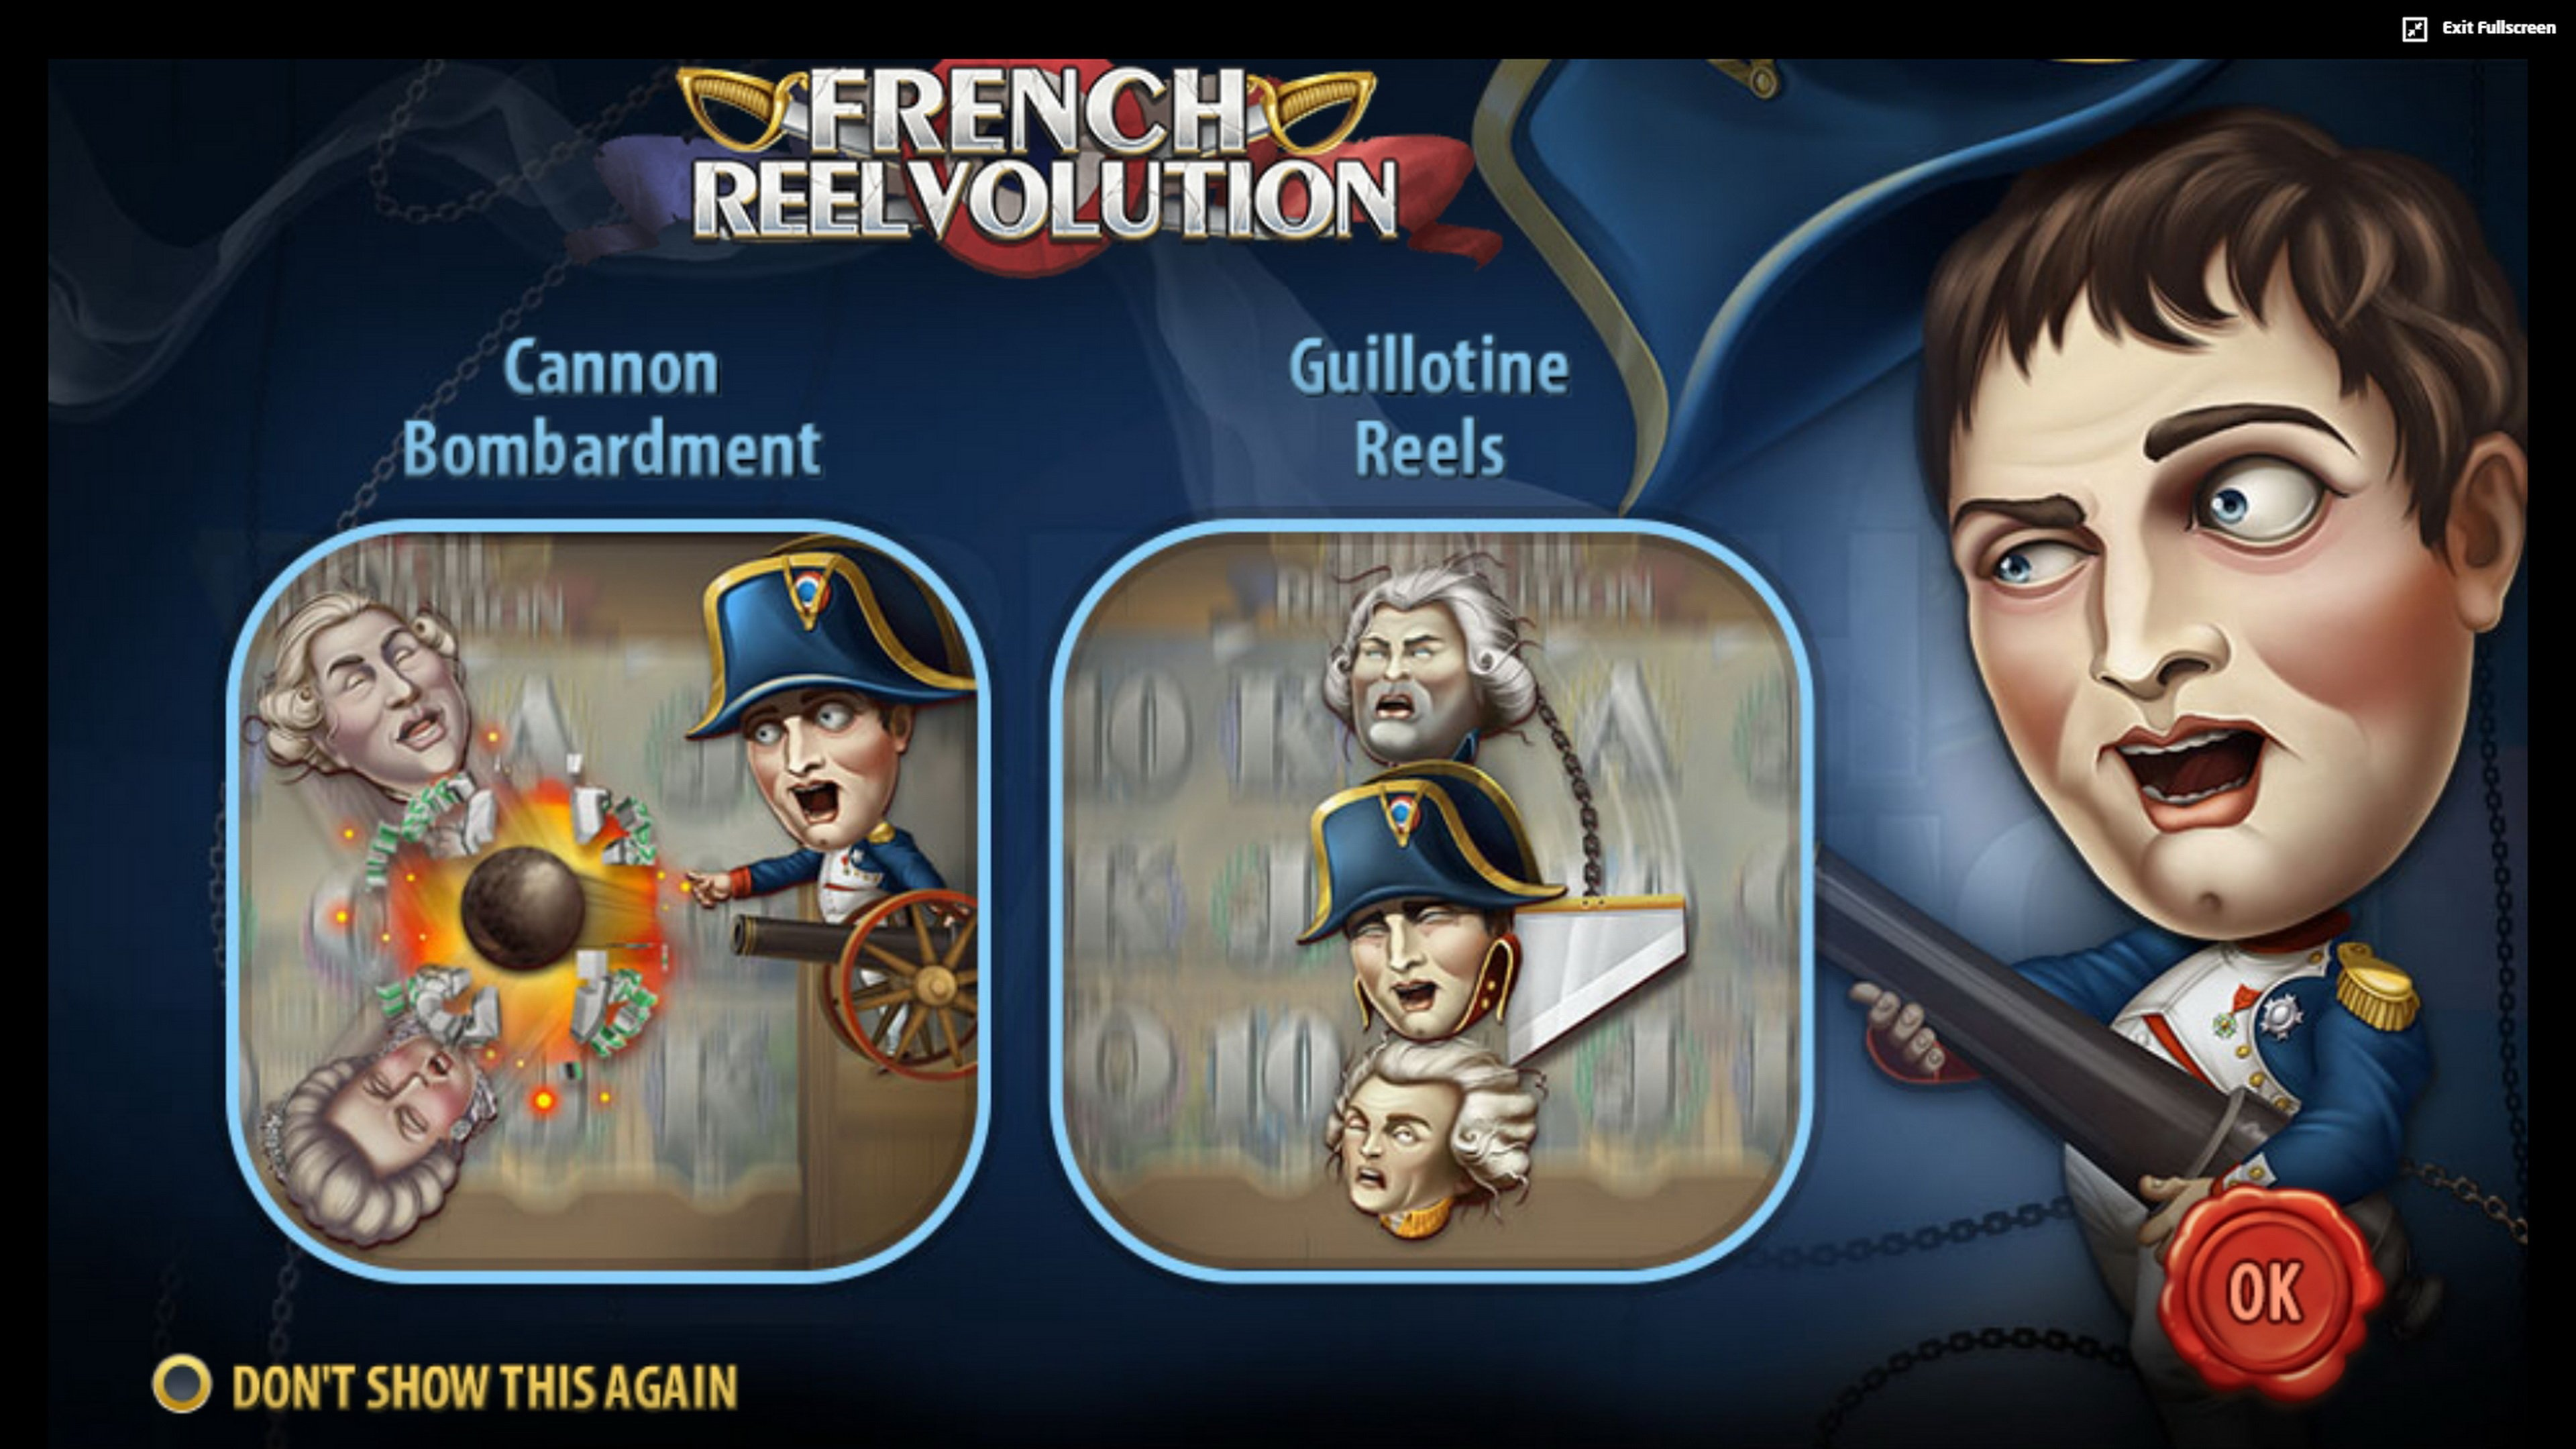 Play The French Reelvolution Free Casino Slot Game by 888 Gaming